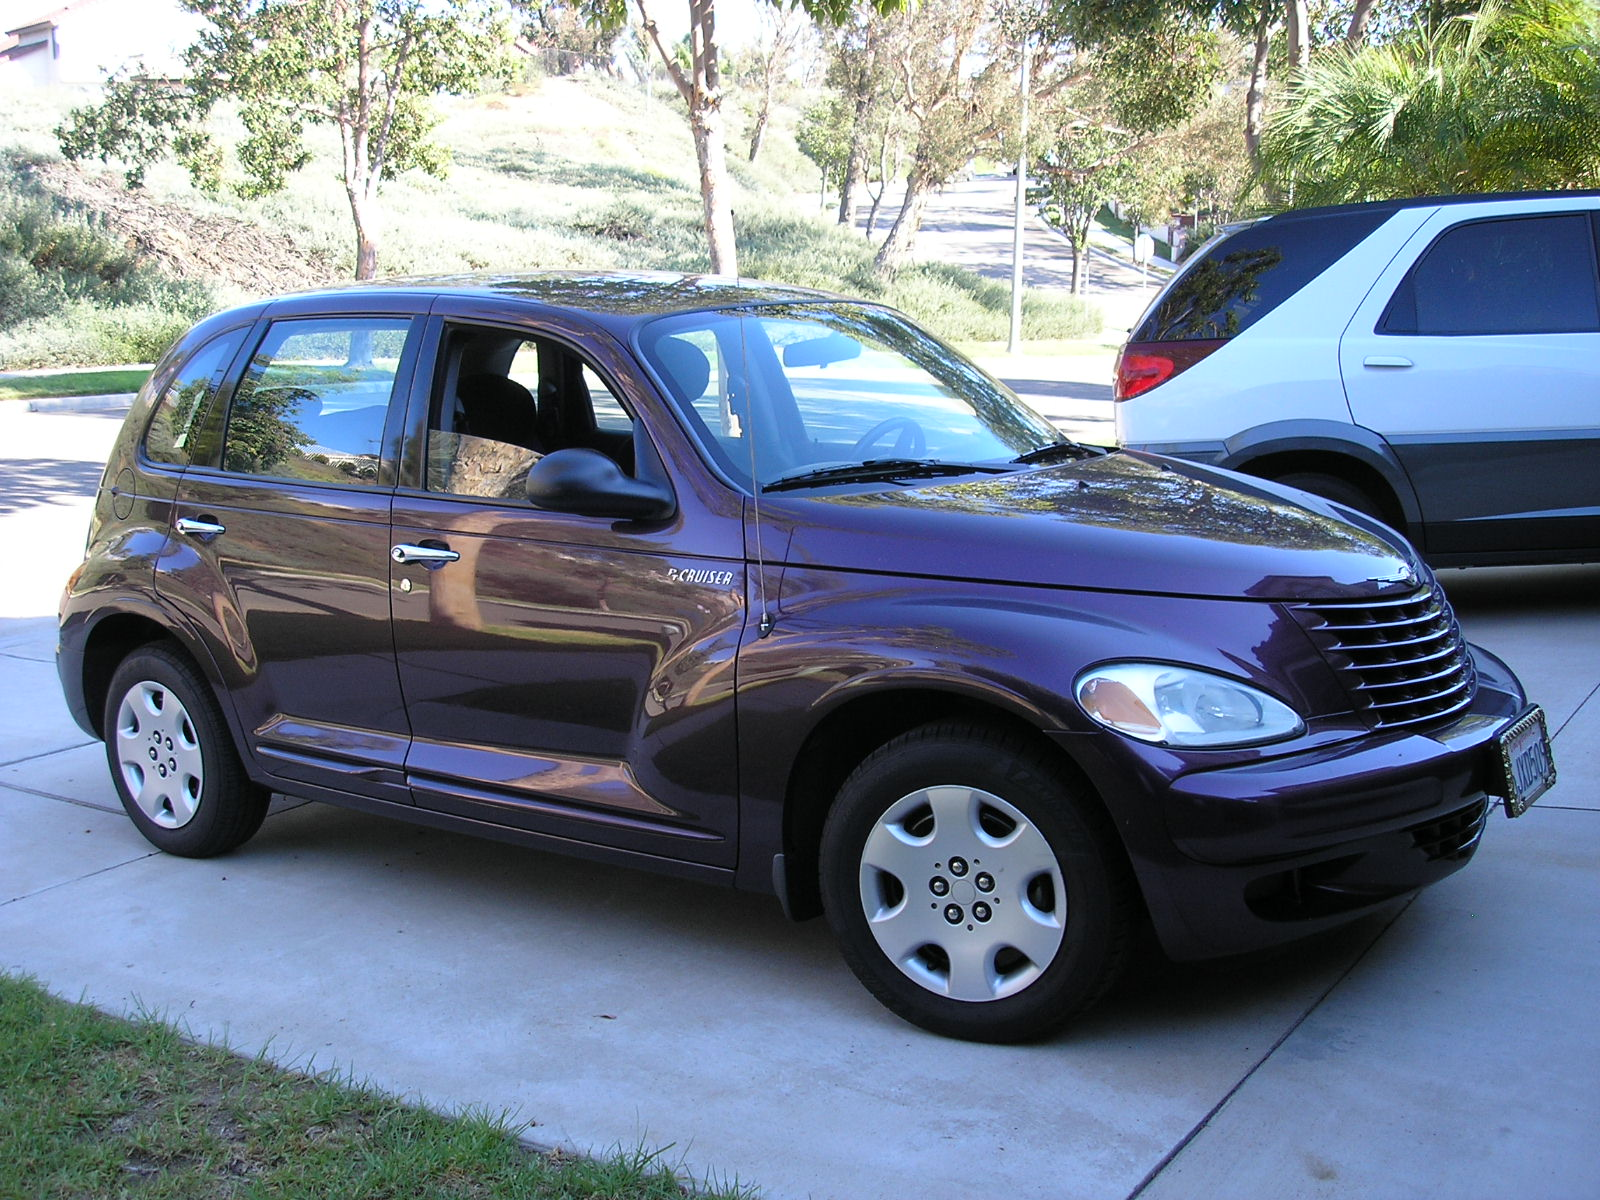 2004 chrysler pt cruiser exterior pictures cargurus. Black Bedroom Furniture Sets. Home Design Ideas